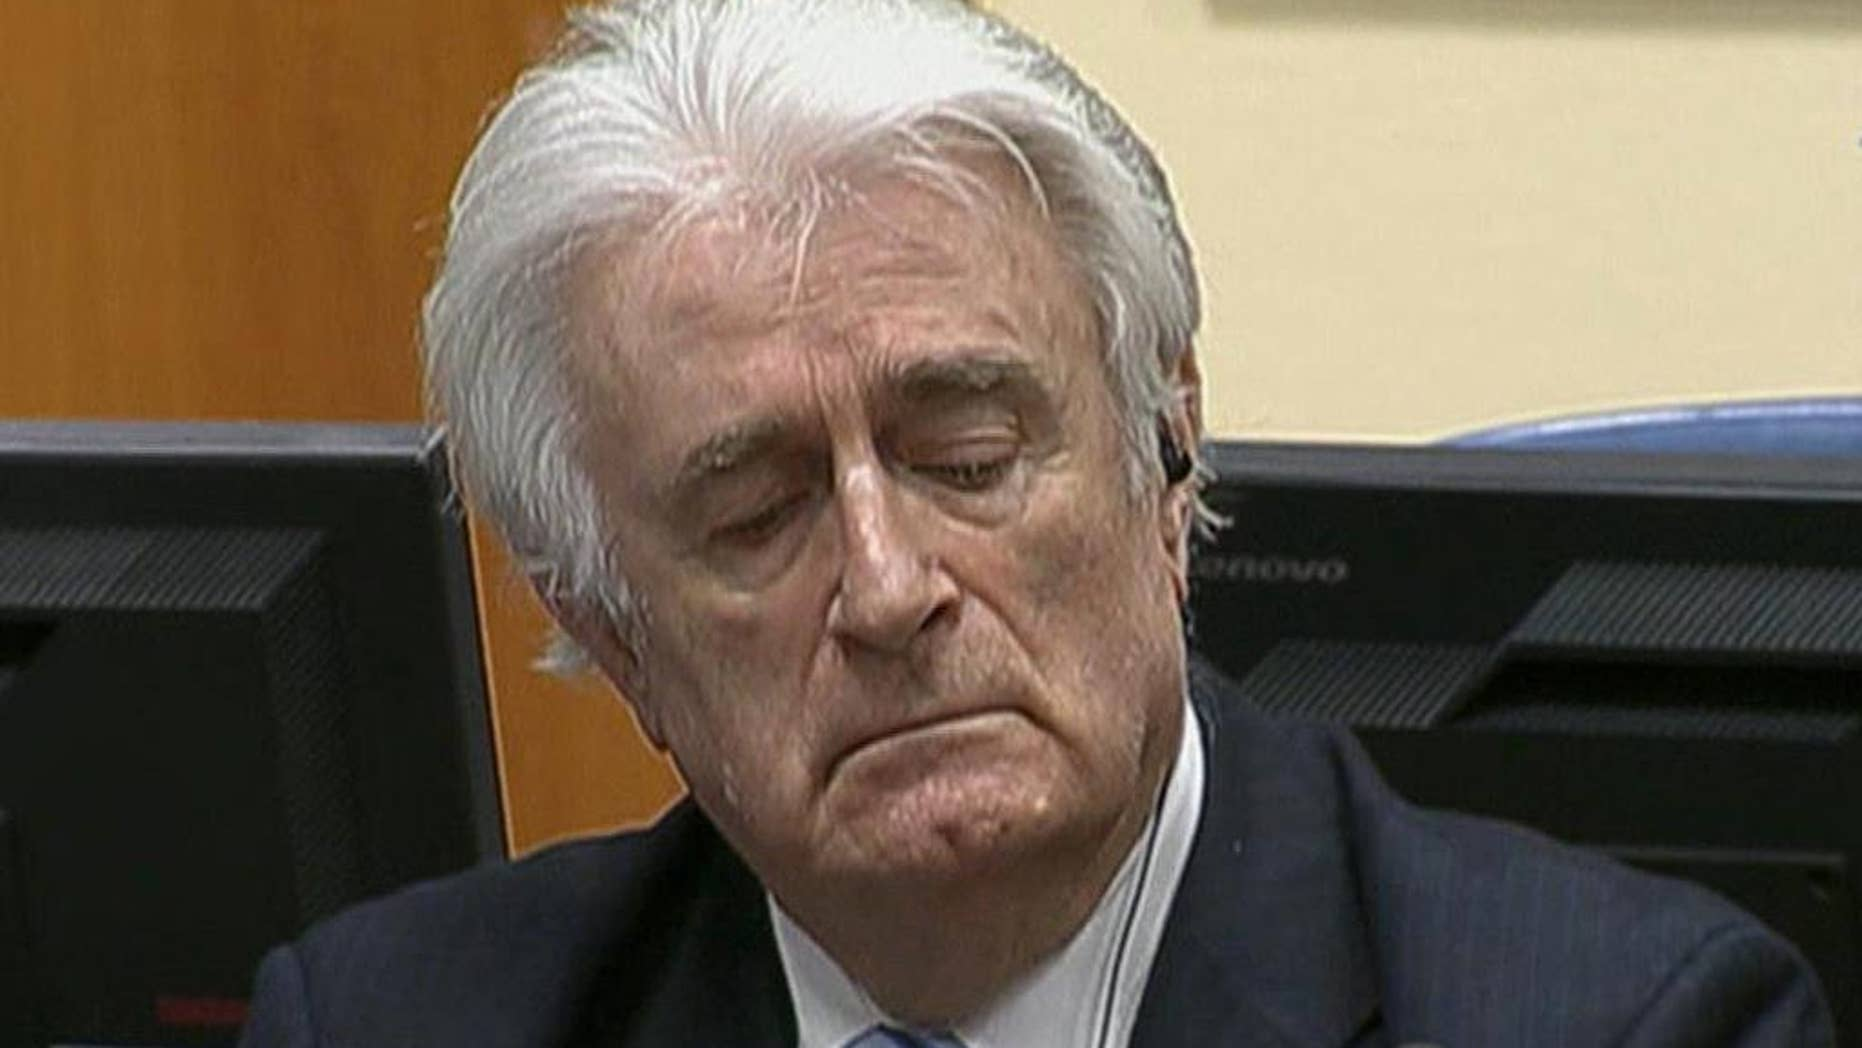 In this image taken from video Bosnian Serb wartime leader Radovan Karadzic listens to the his sentence  at the International Criminal Tribunal for Former Yugoslavia (ICTY) in The Hague, The Netherlands Thursday March 24, 2016. Karadzic was convicted of genocide and nine other charges Thursday at a U.N. court, and sentenced to 40 years in prison. (ICTY, Pool via AP)